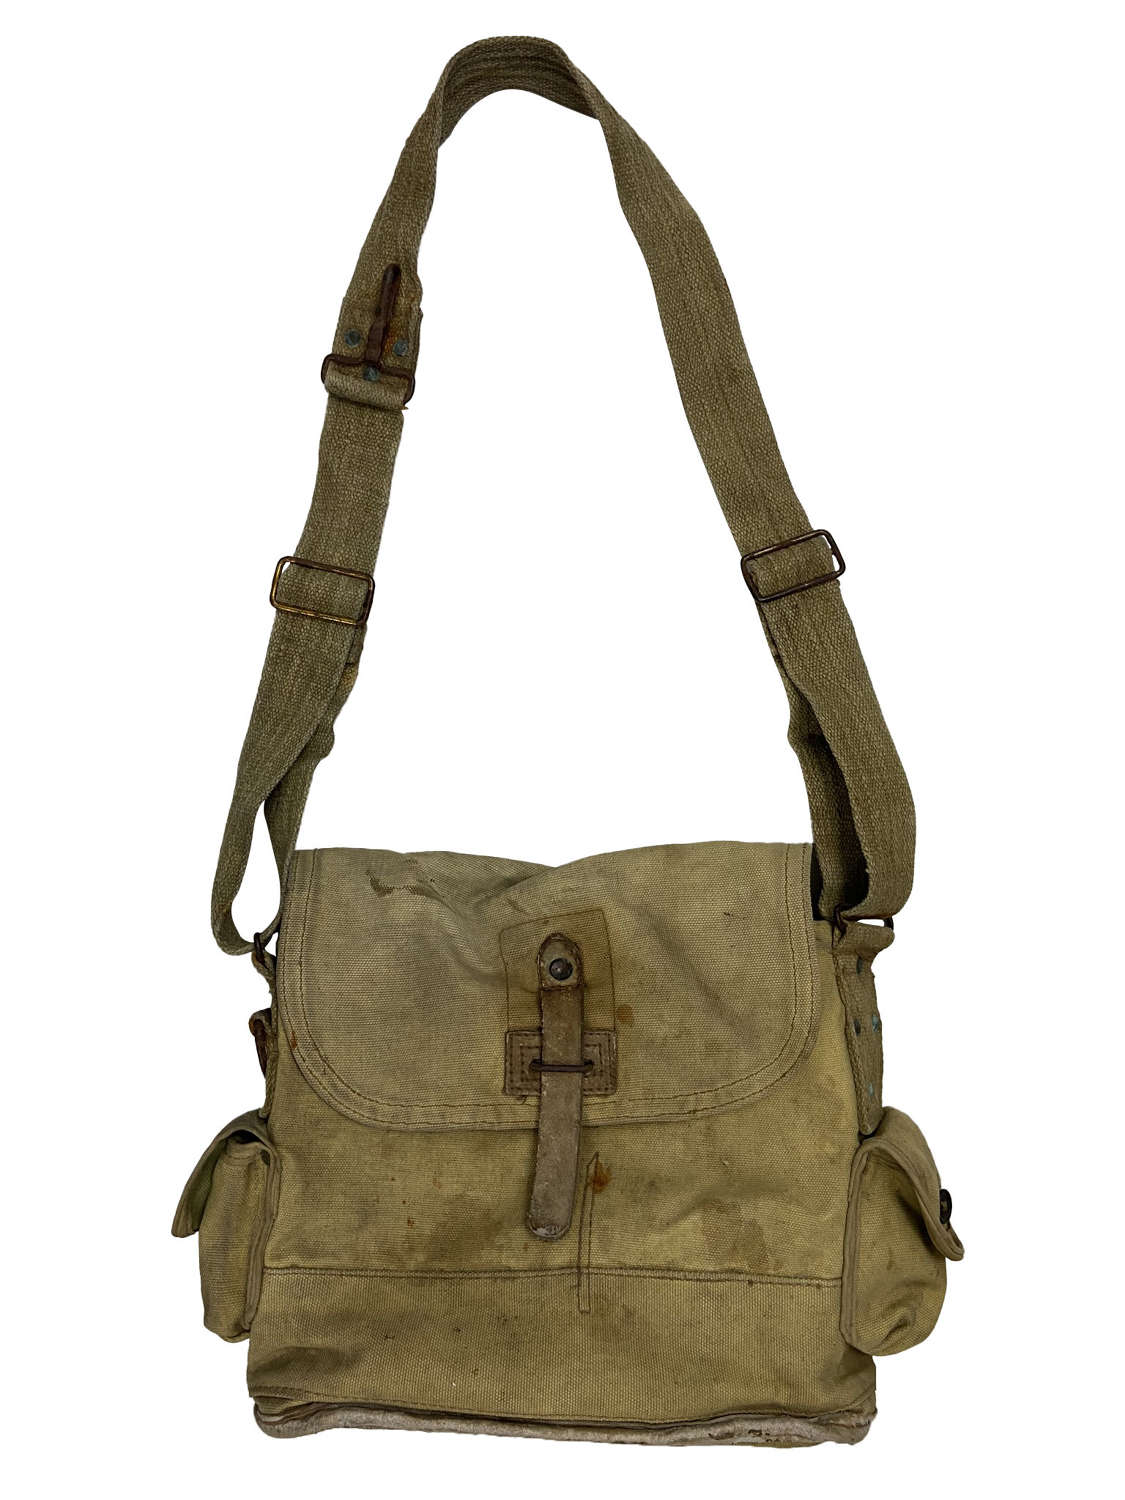 Original 1940 Dated French Army Gas Mask Bag